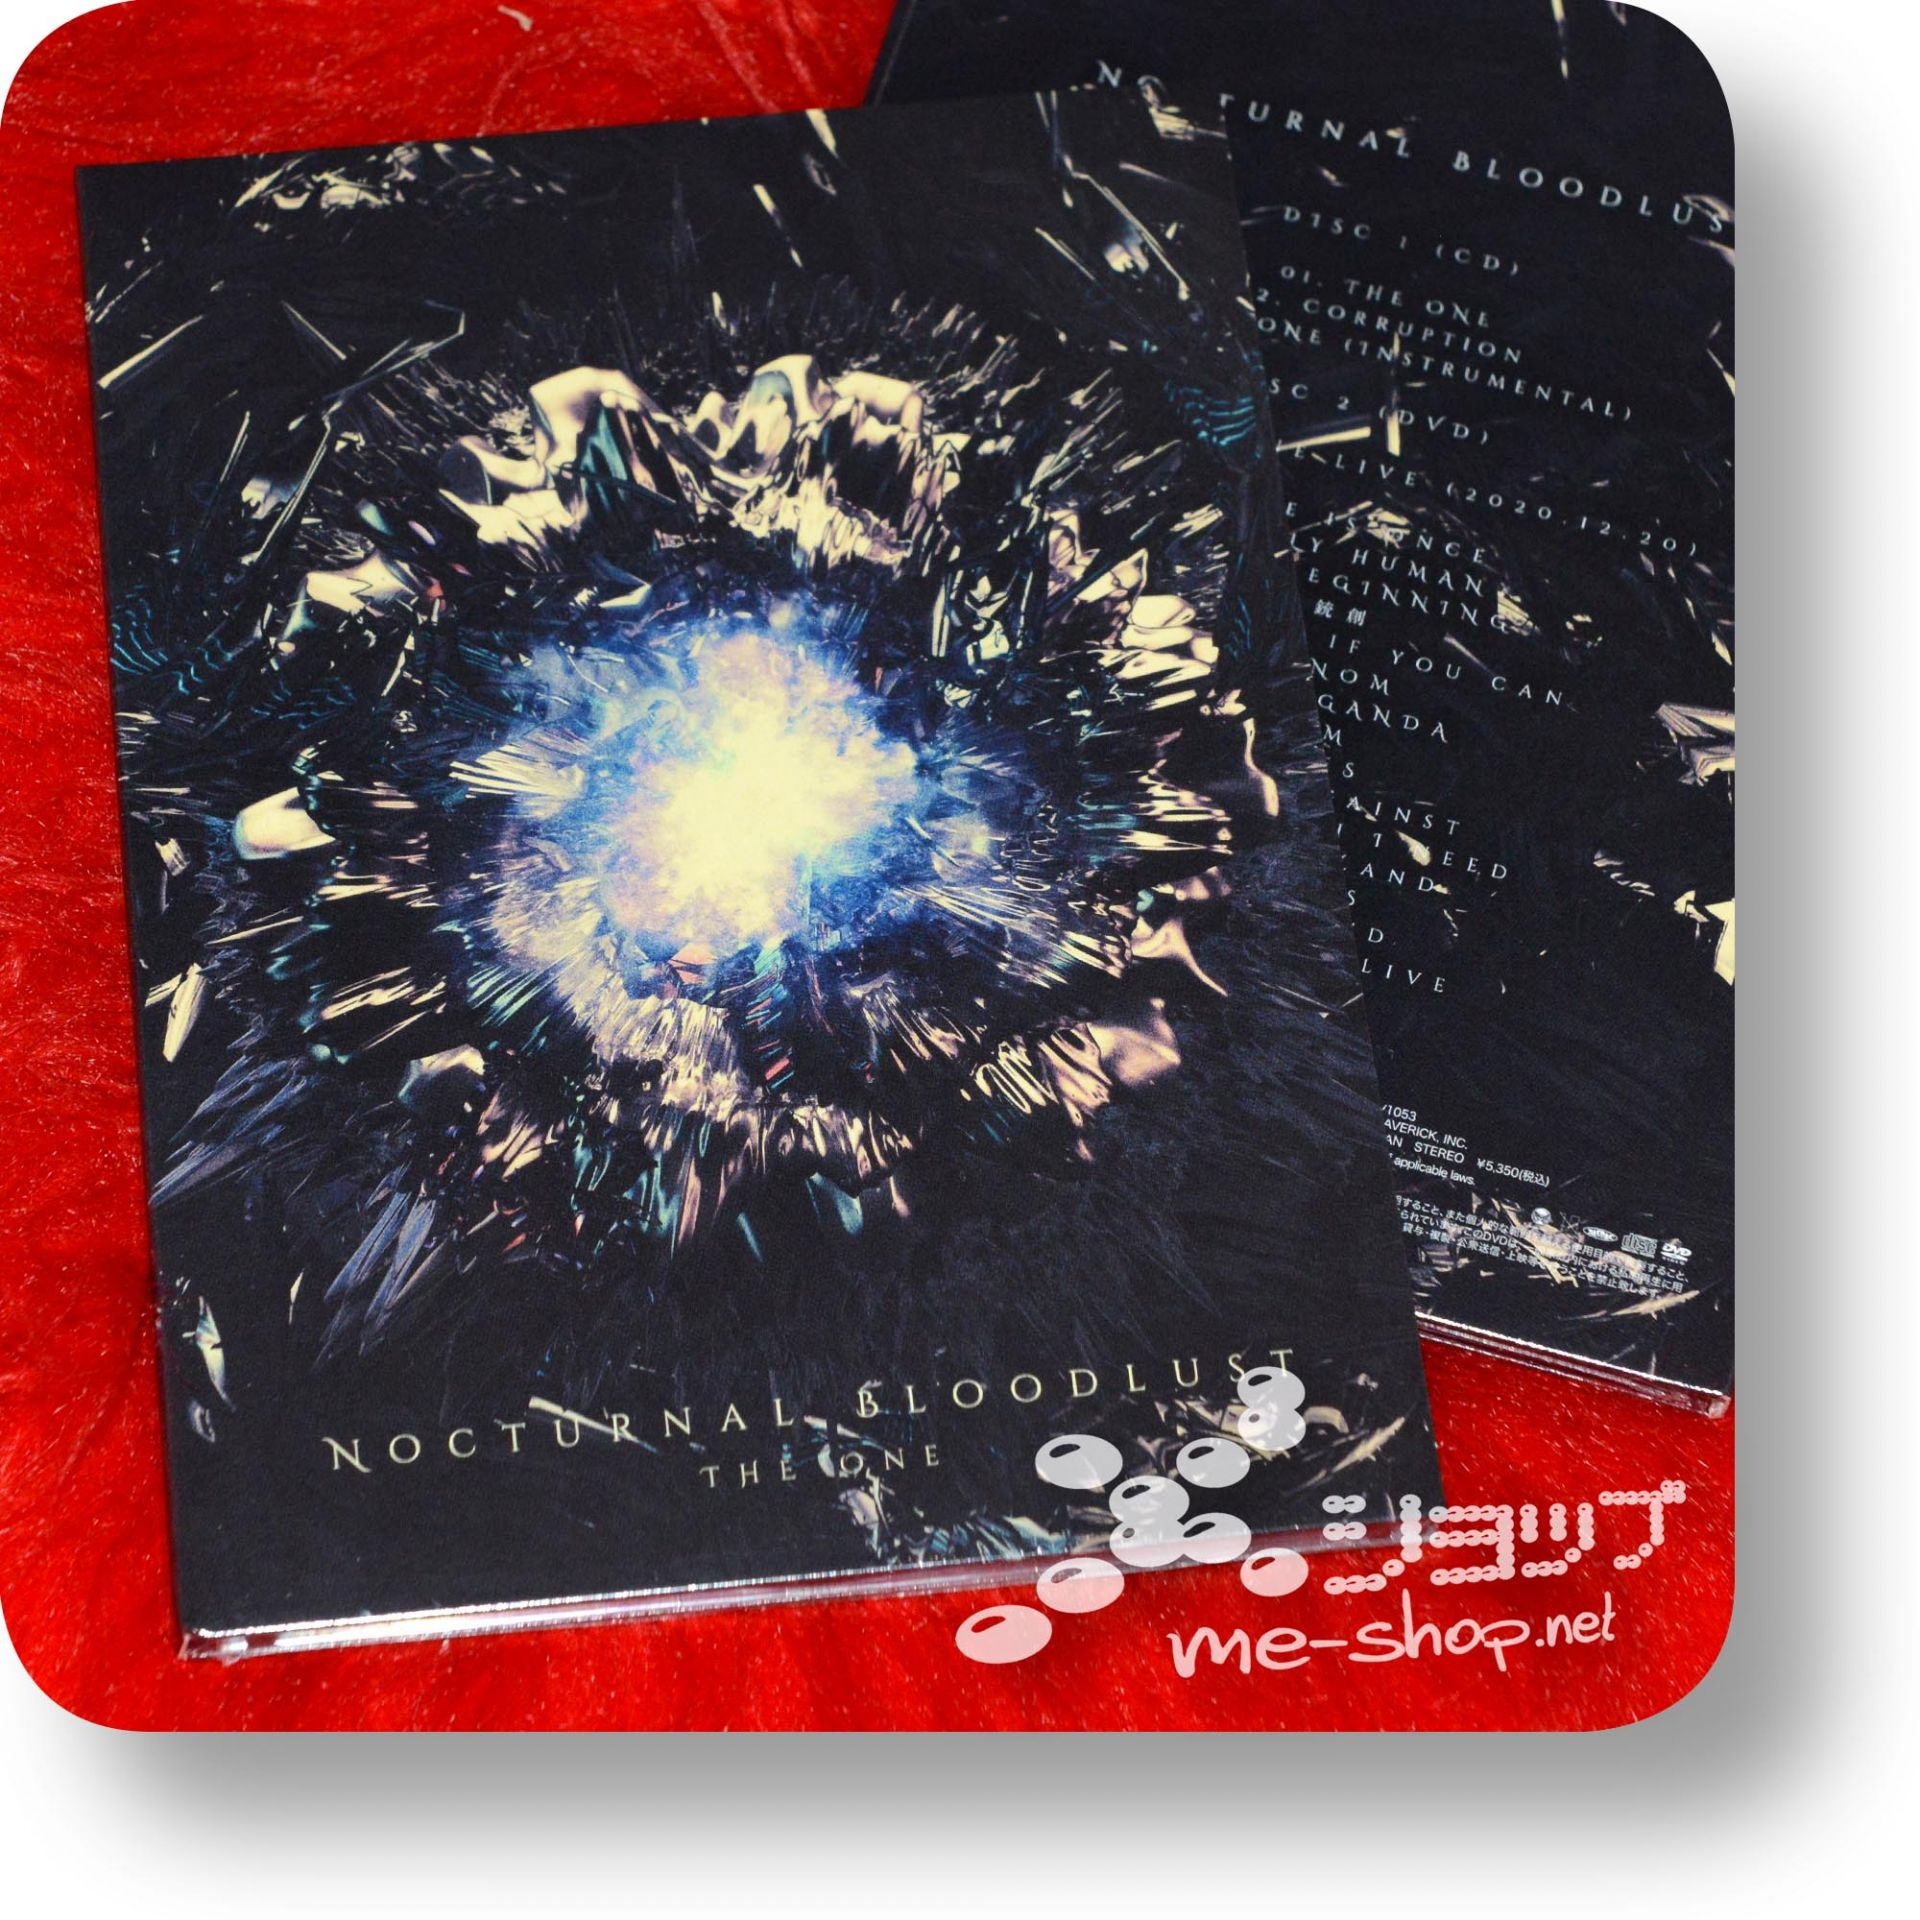 nocturnal bloodlust the one cd+dvd